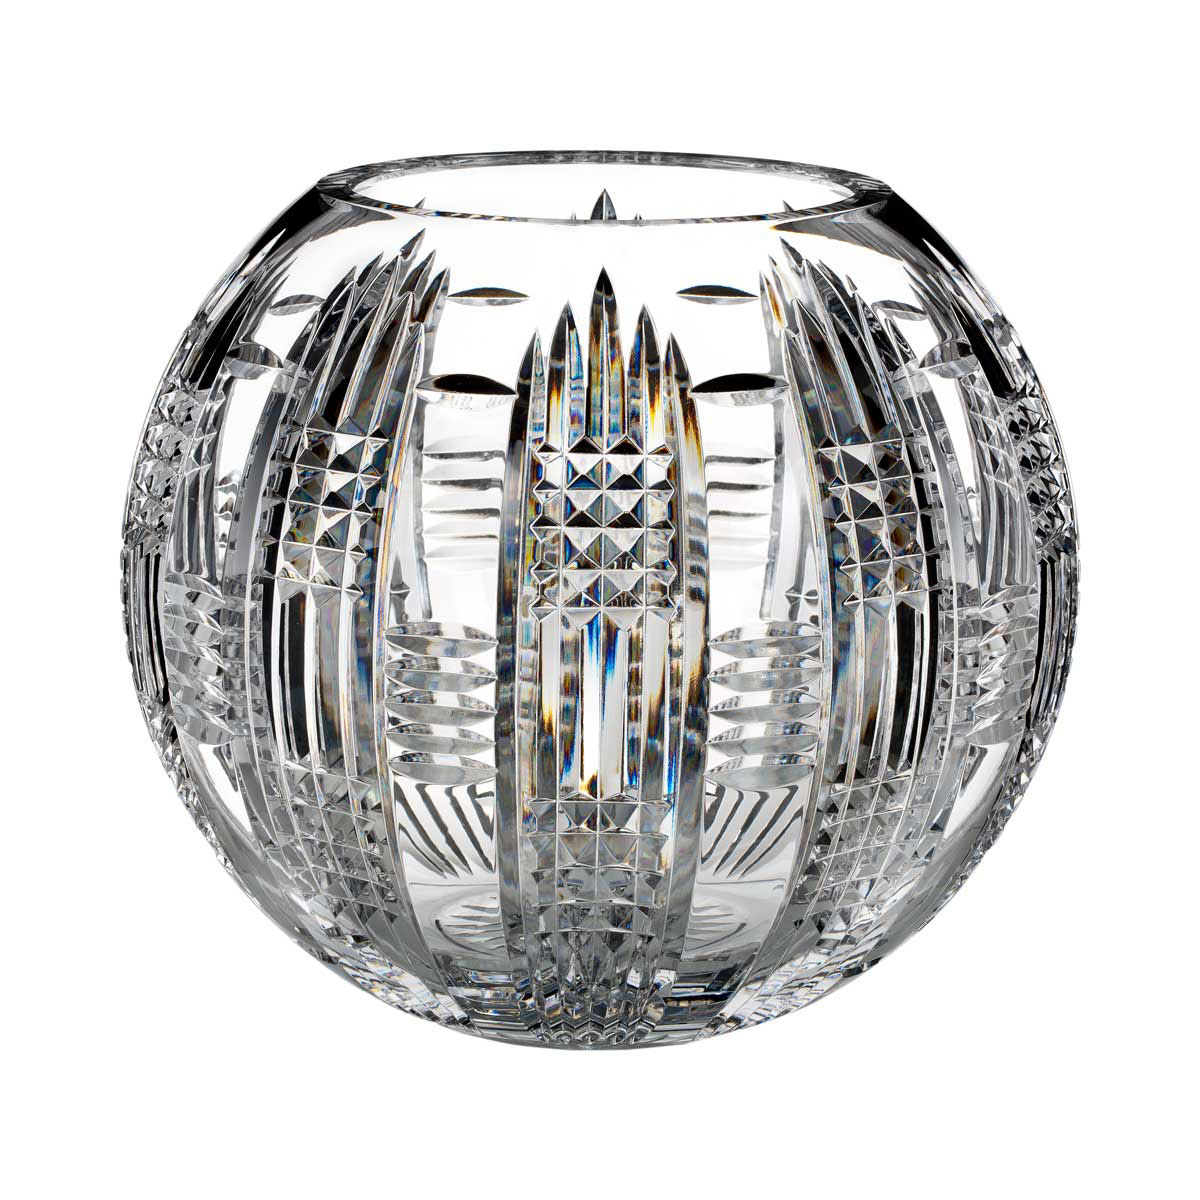 Waterford Crystal, House of Waterford Tom Cooke Dungarvan Crystal Rose Bowl, Limited Edition of 250